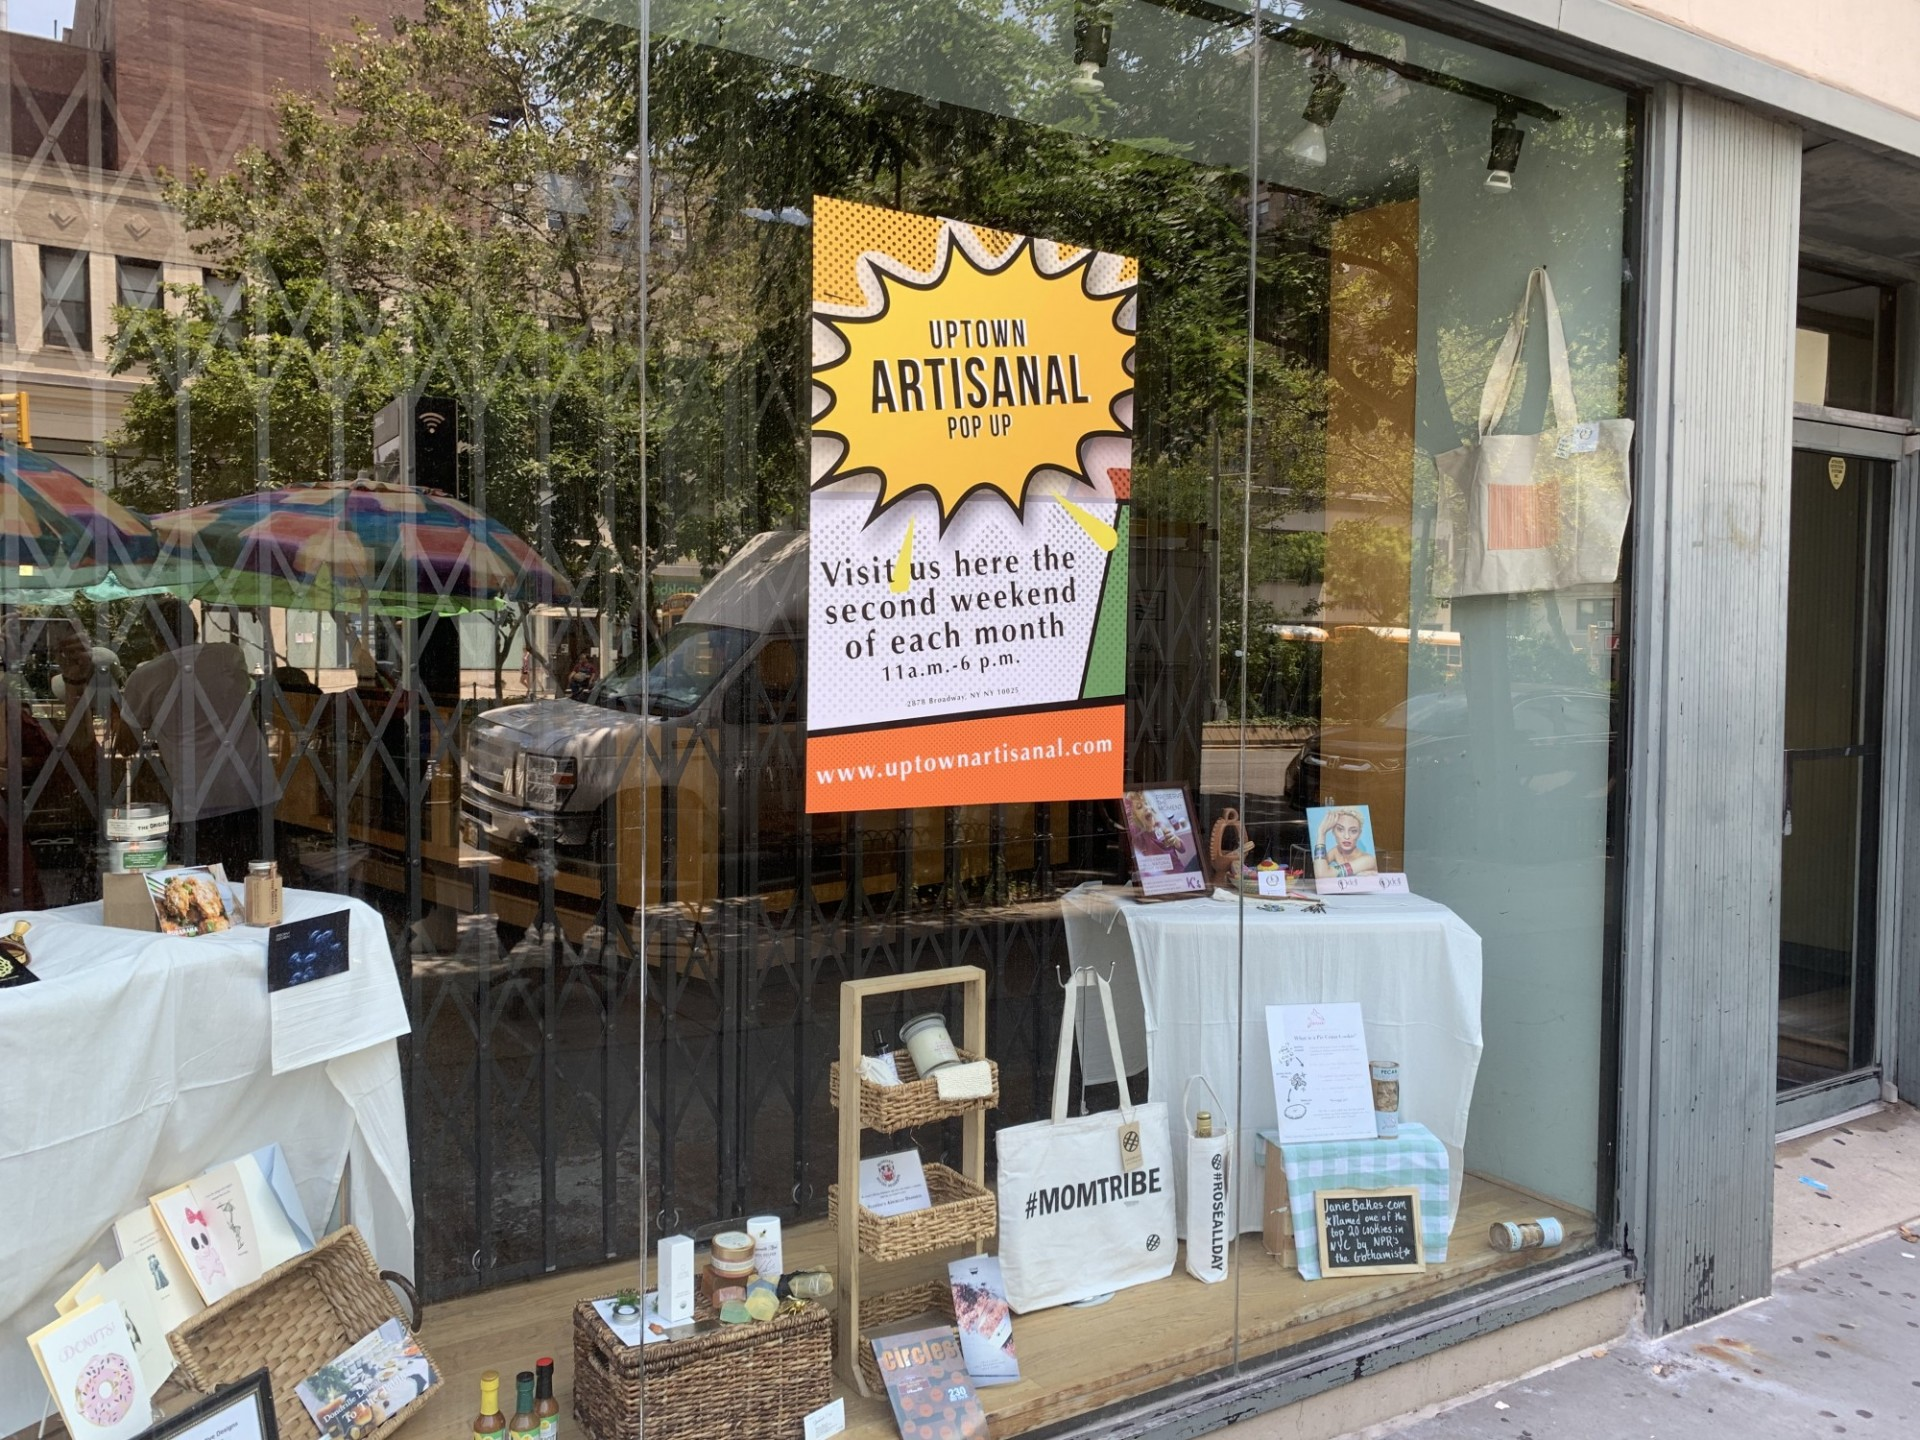 Window display for pop-up market